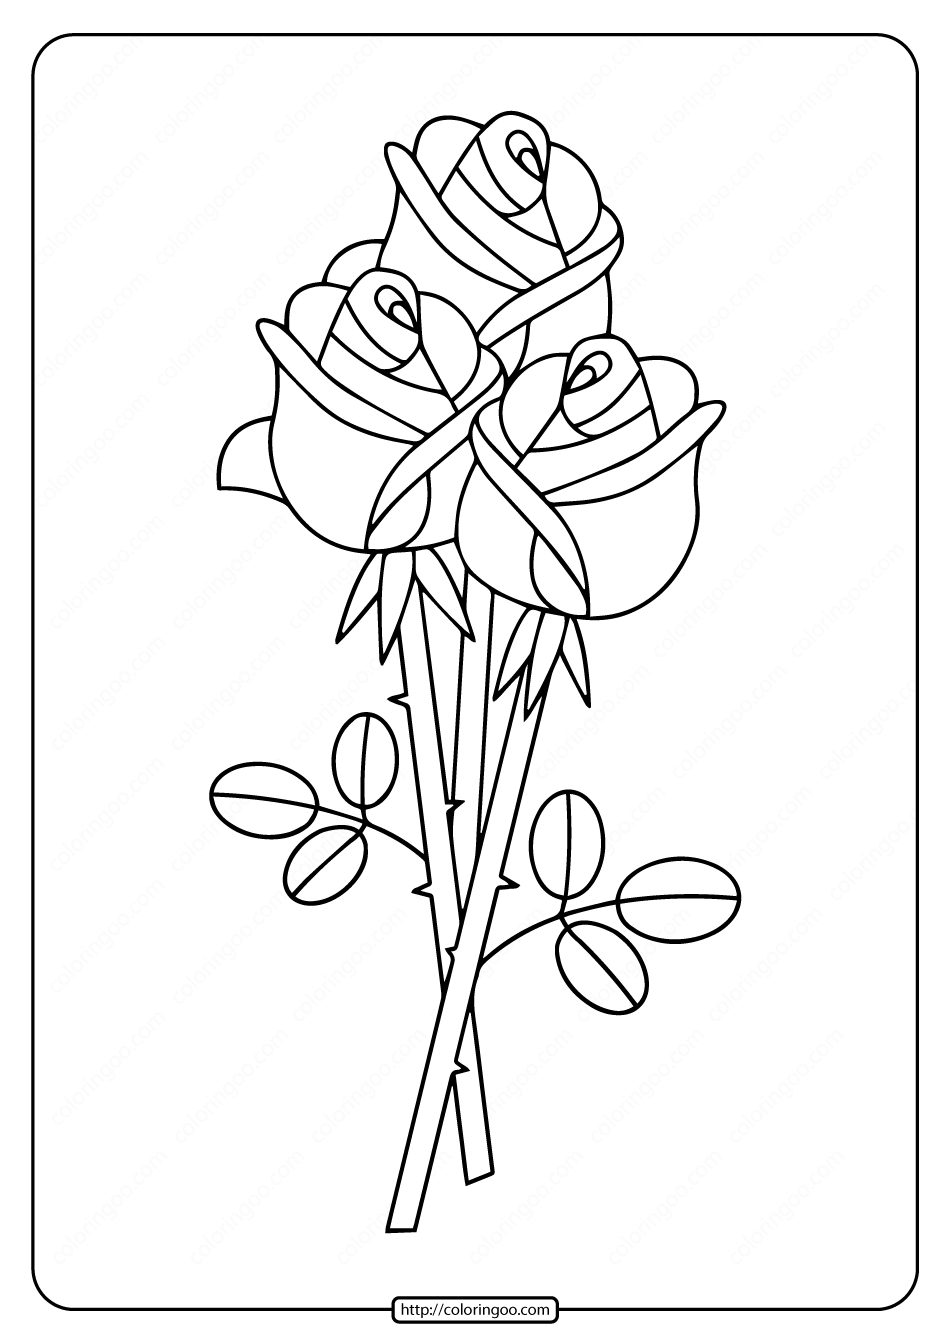 Free Printable Bunch of Roses Coloring Pages